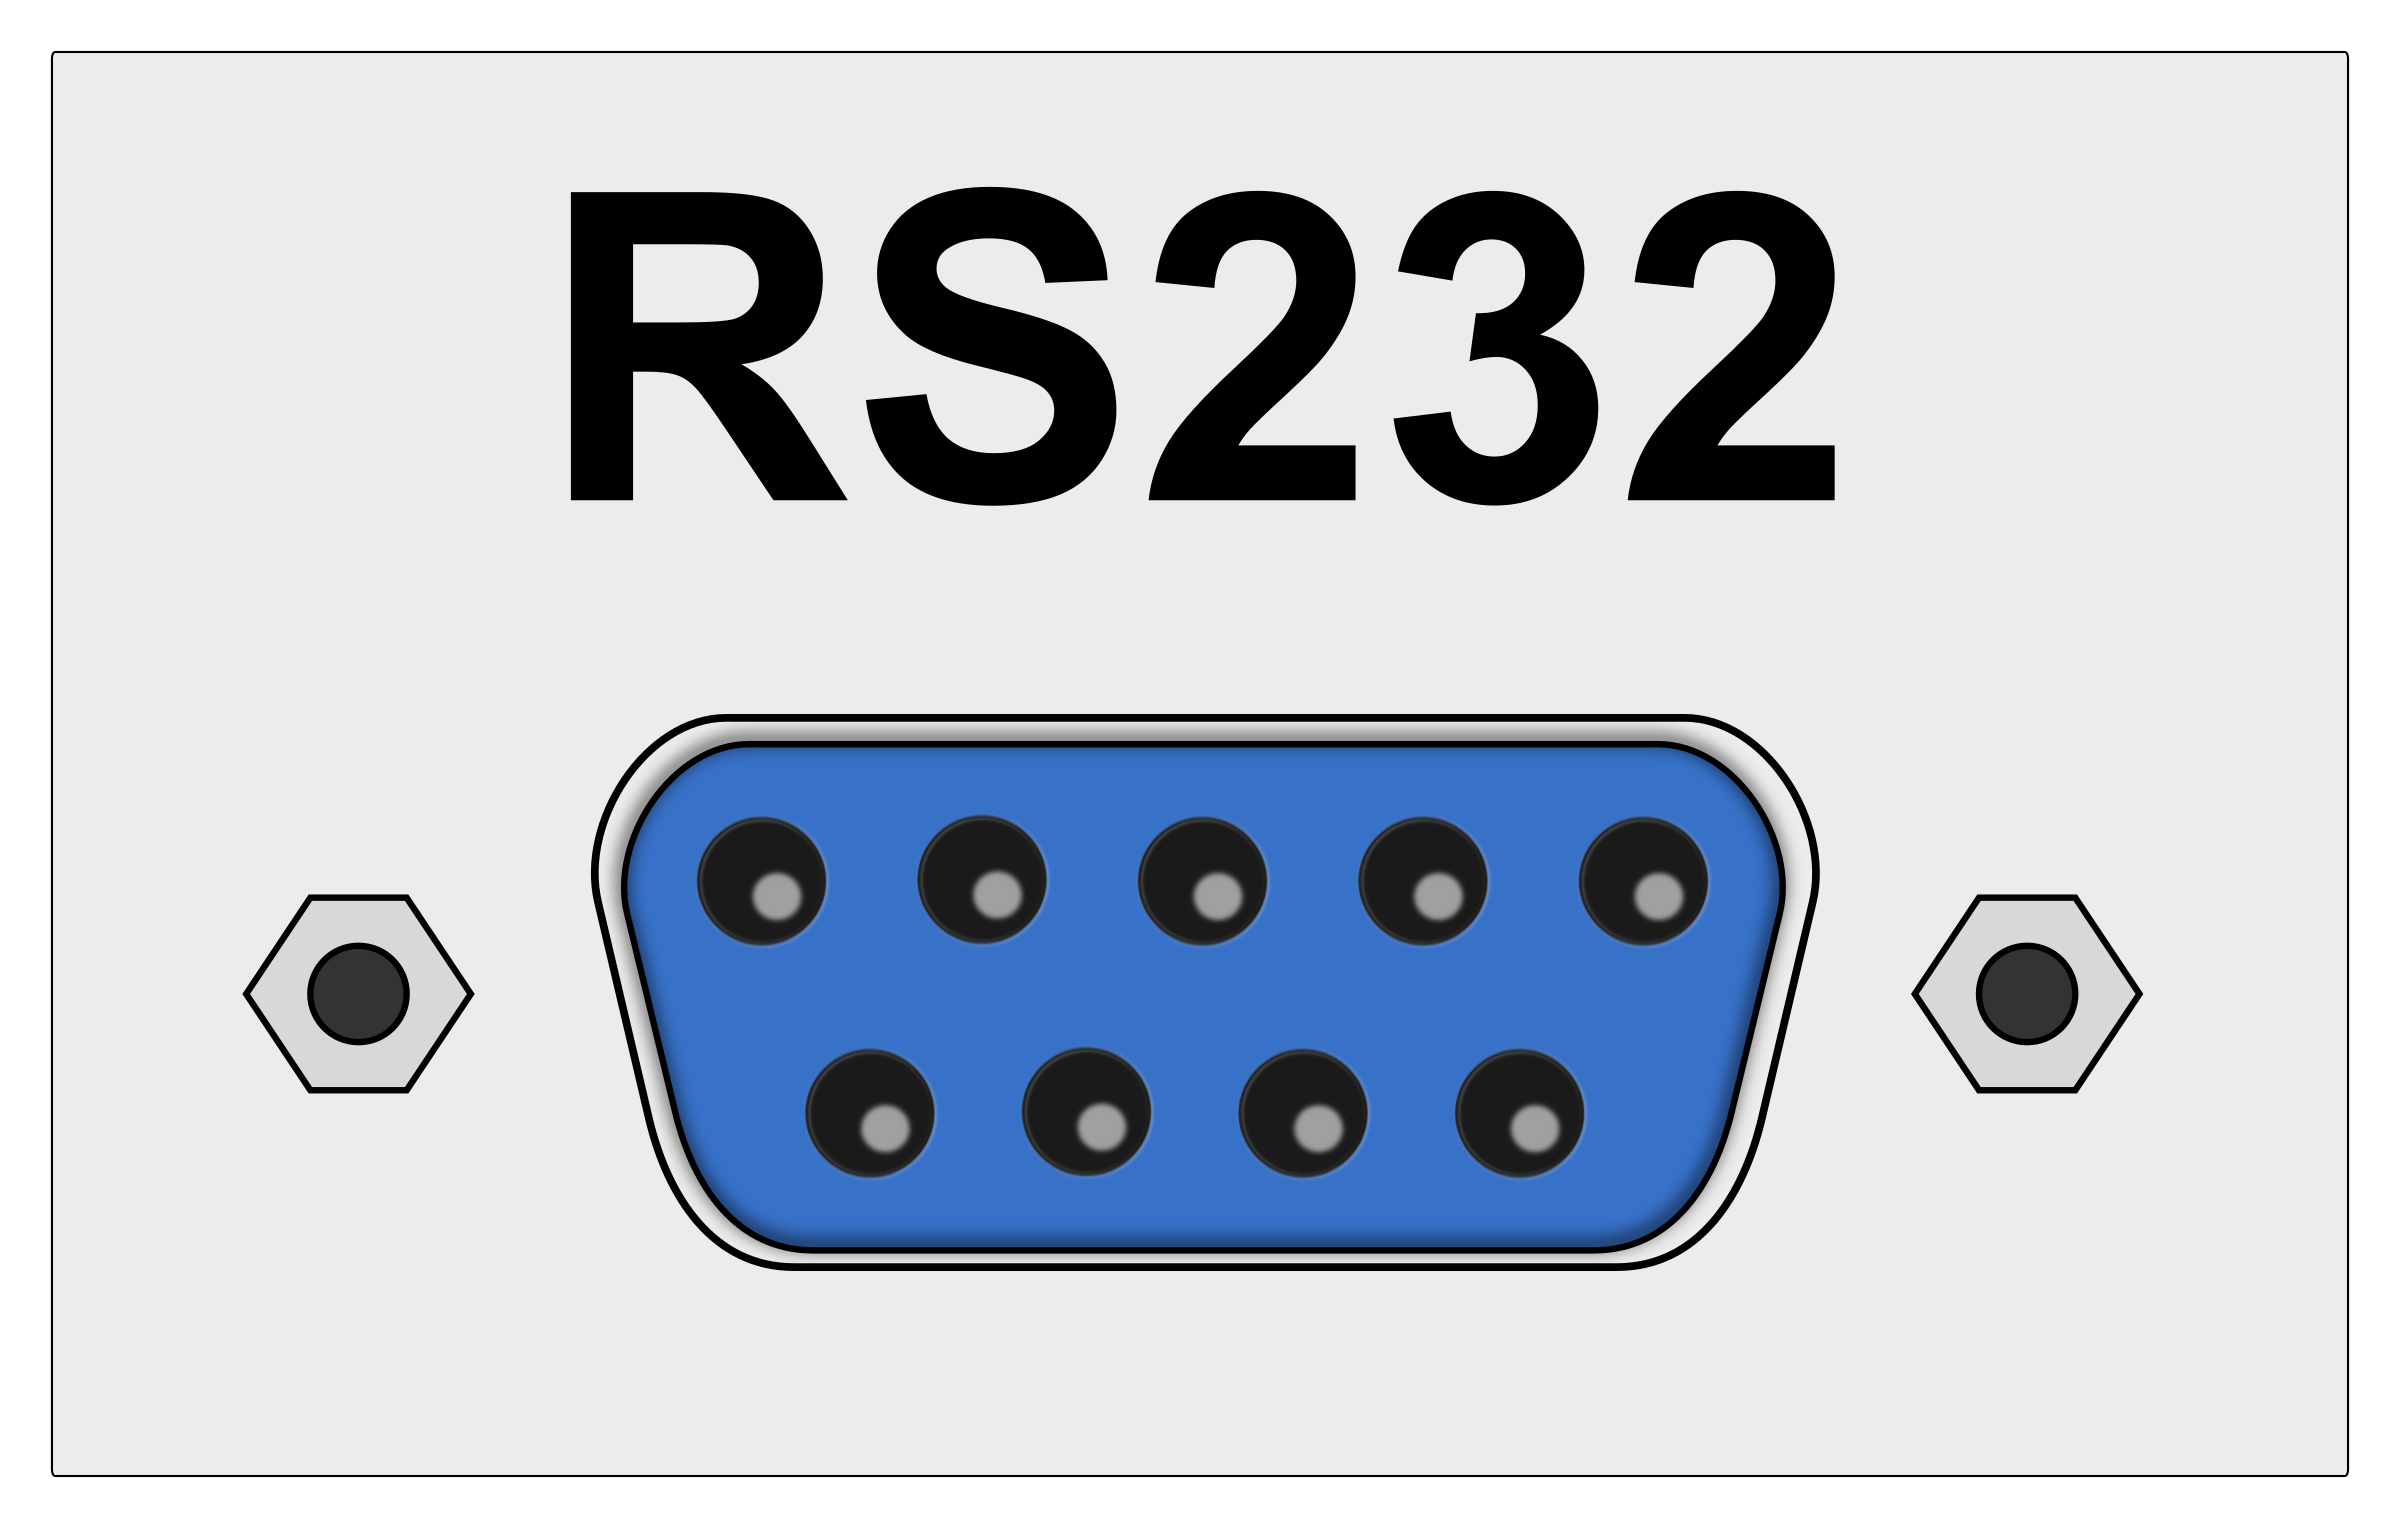 RS232 / COM port connector by Juhele